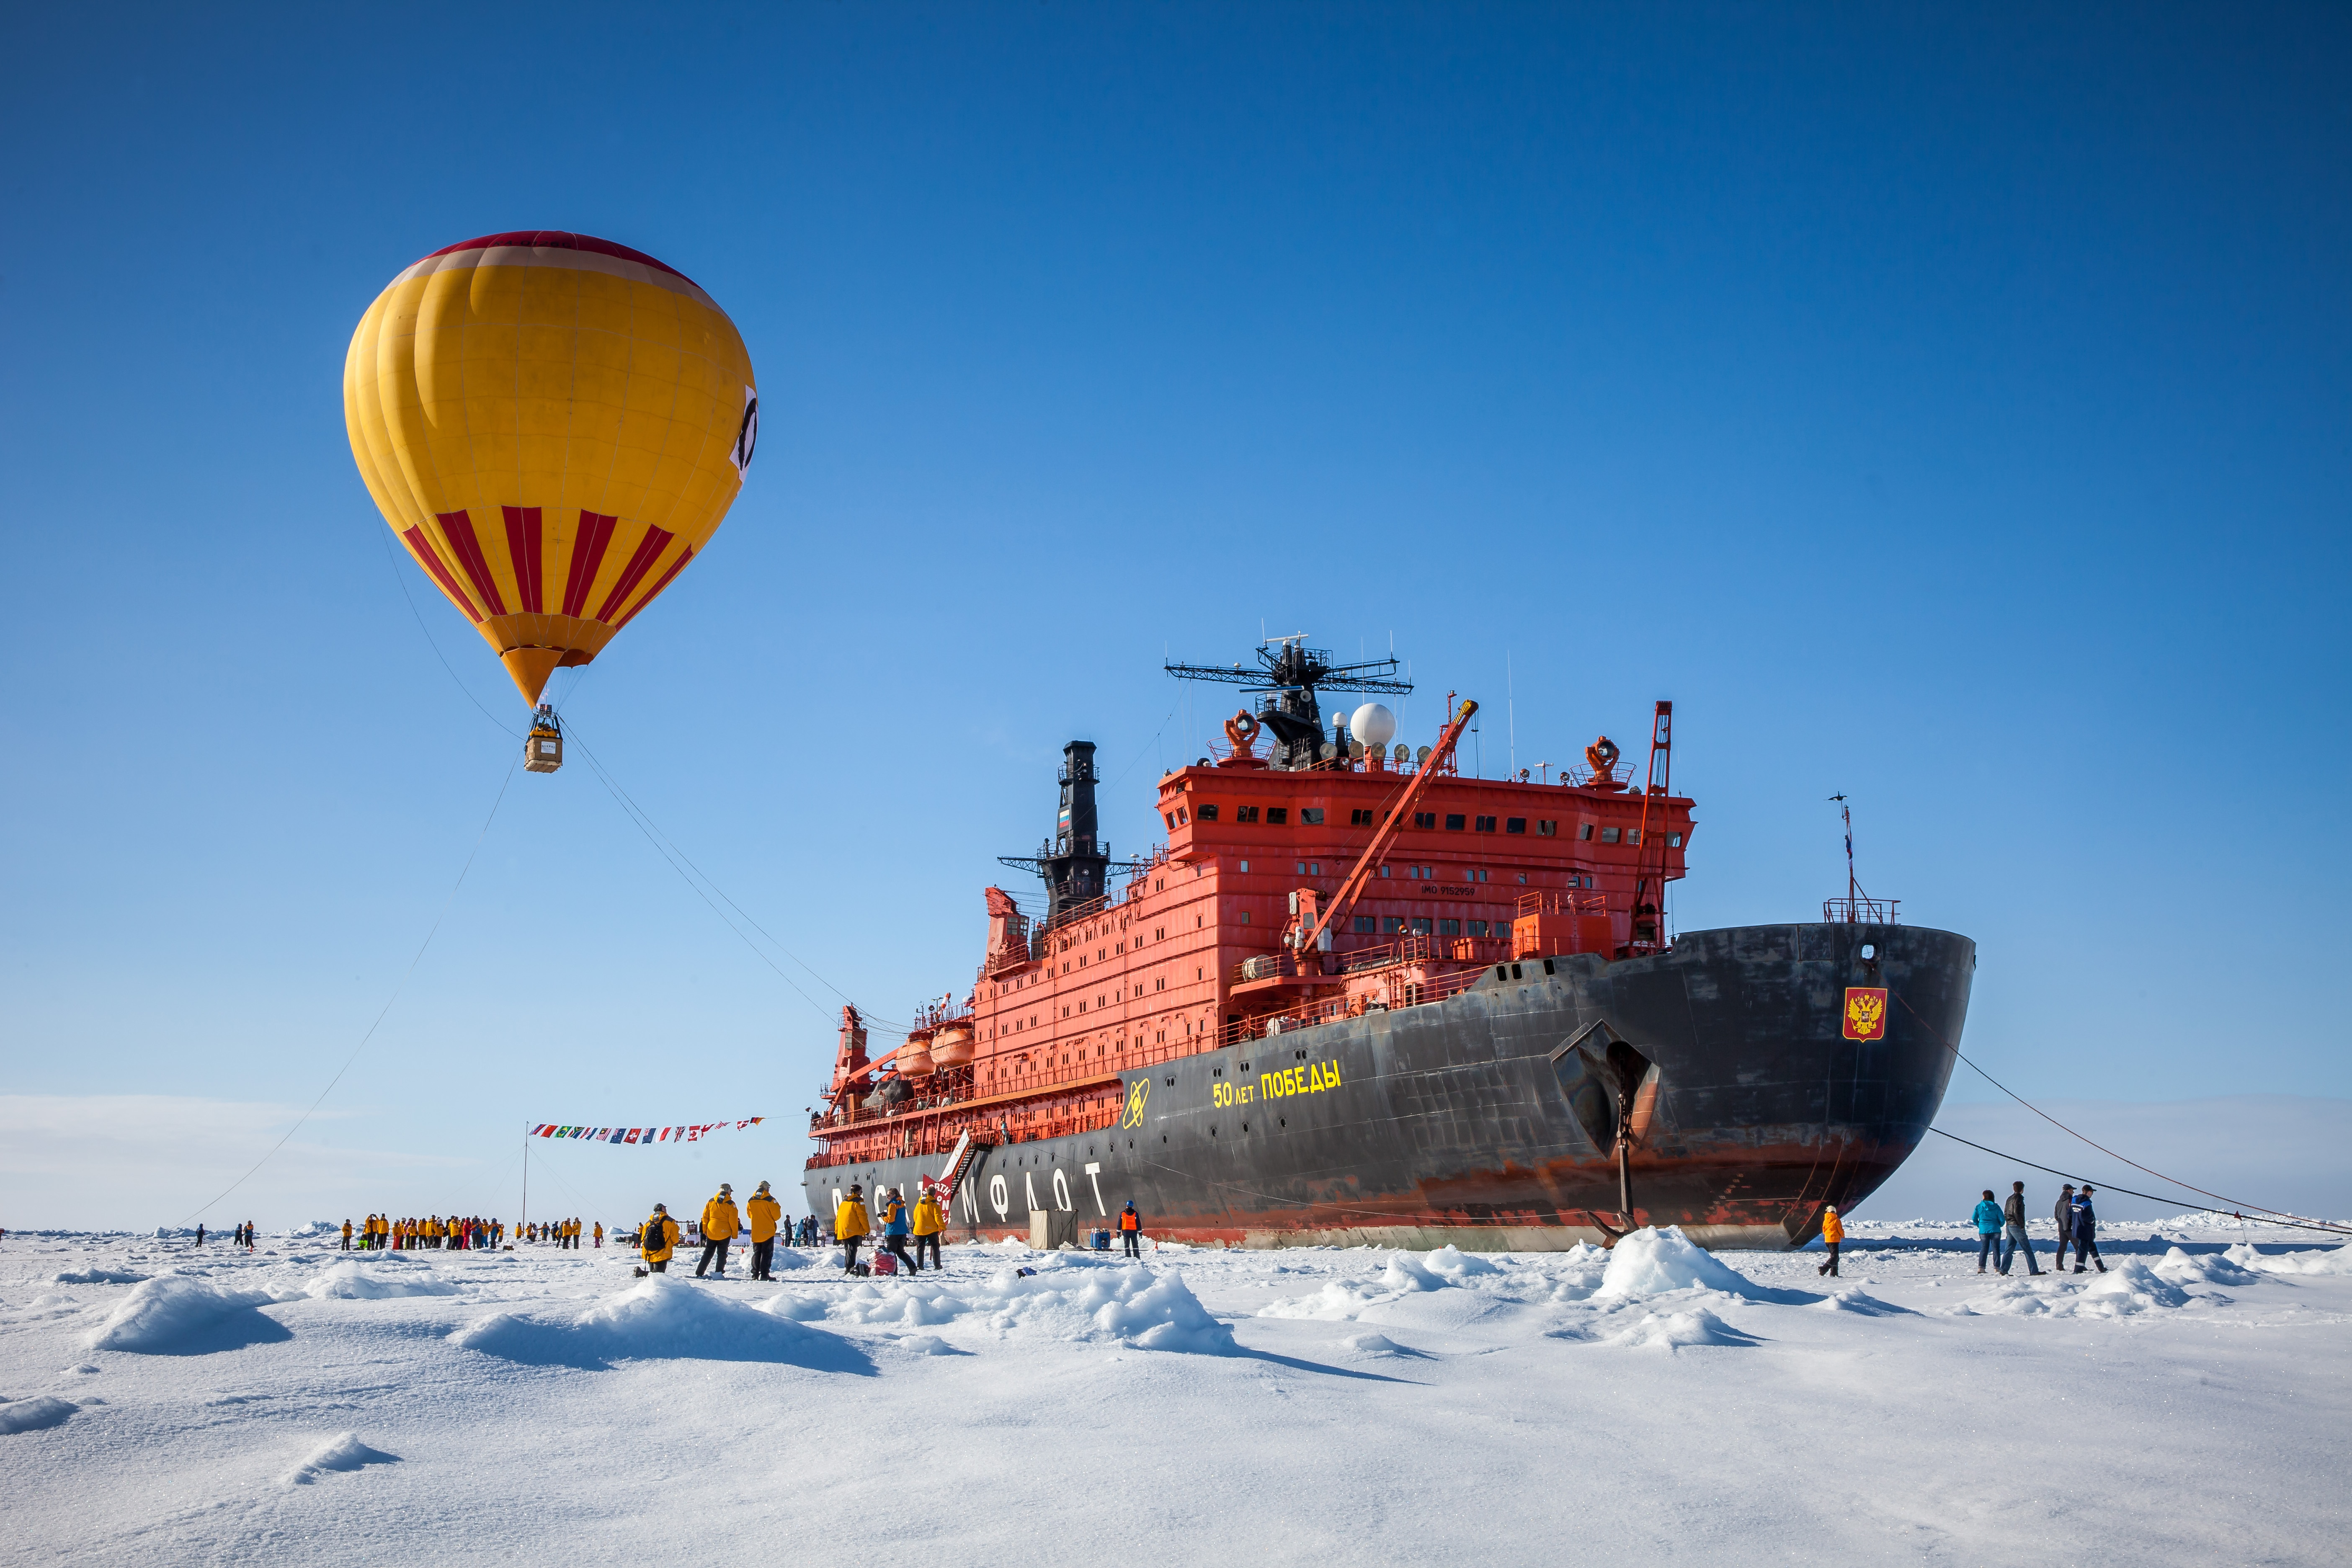 Passengers enjoy a hot air balloon rode over 50 Years of Victory at the North Pole.